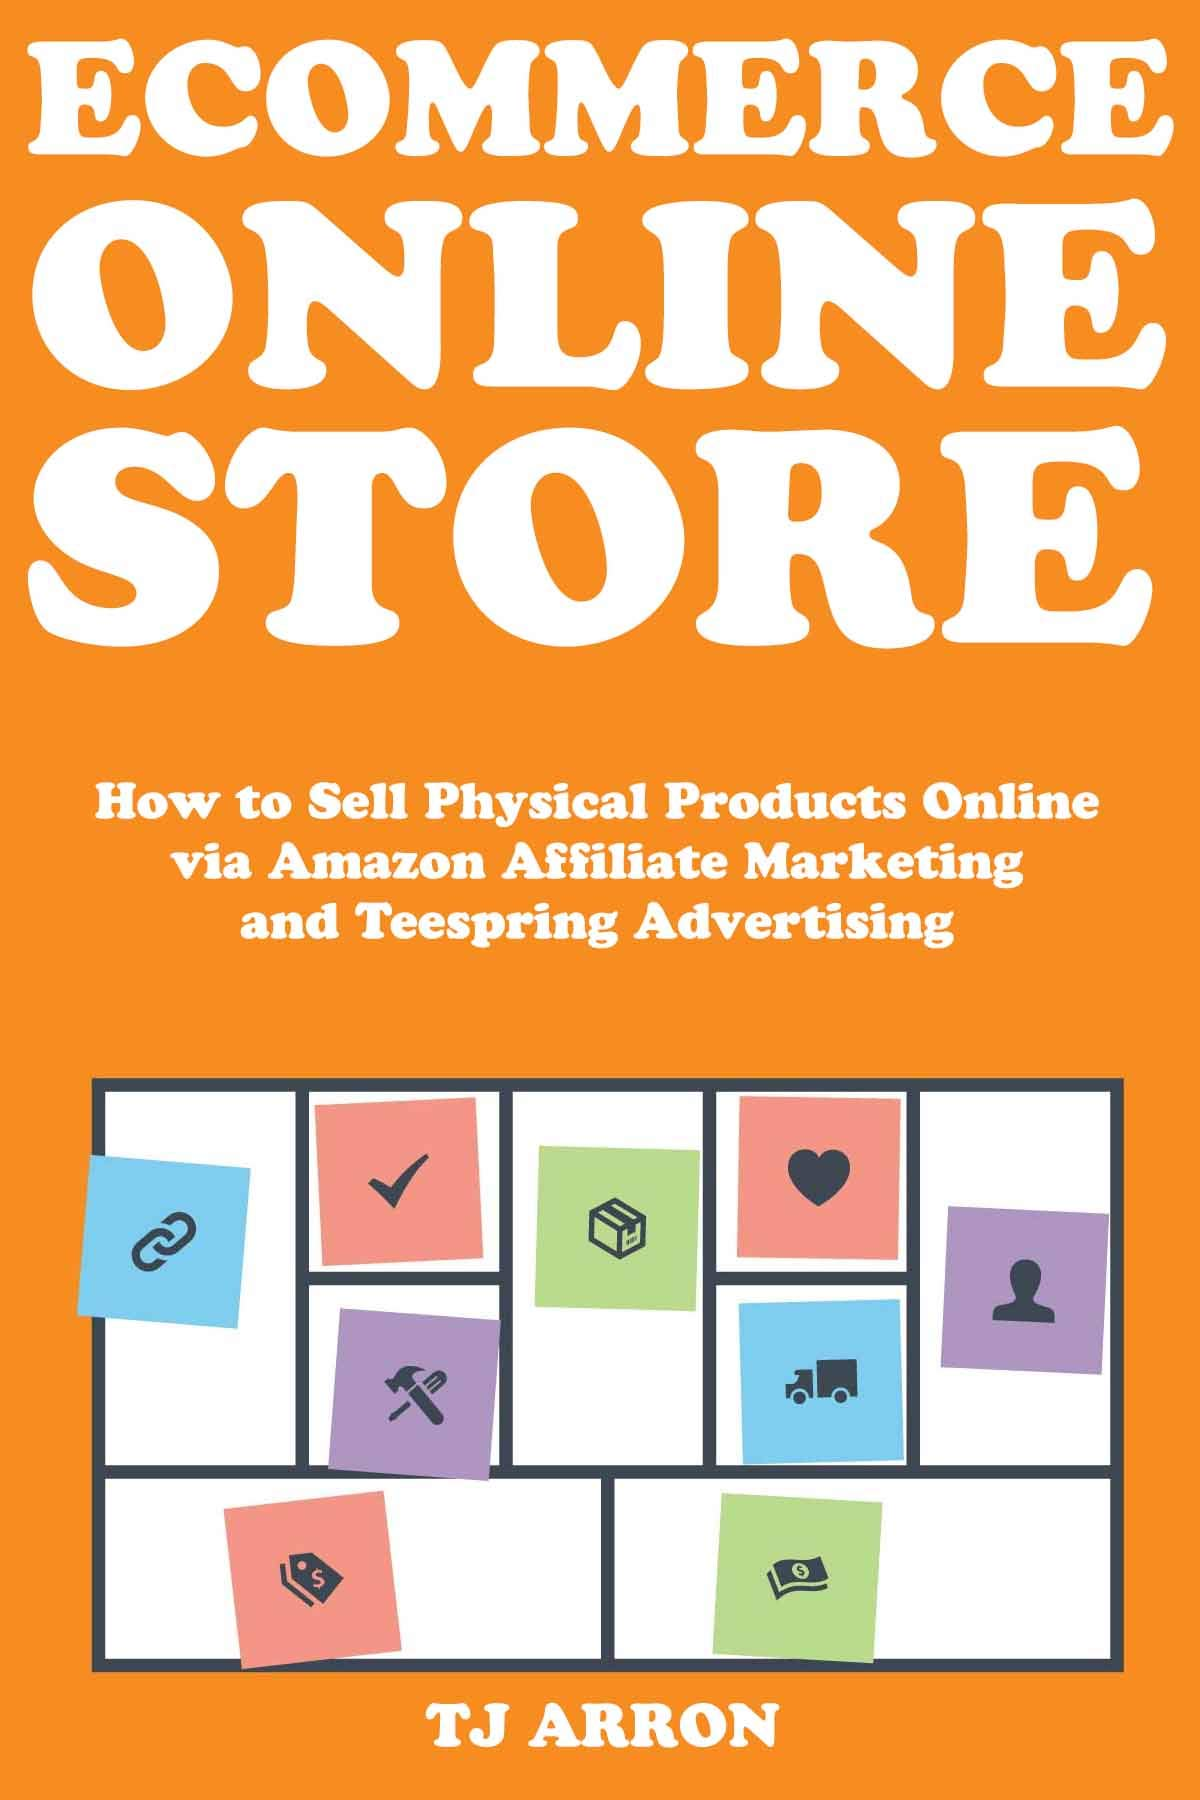 Ecommerce Online Store : How to Sell Physical Products Online via Amazon Affiliate Marketing and Teespring Advertising